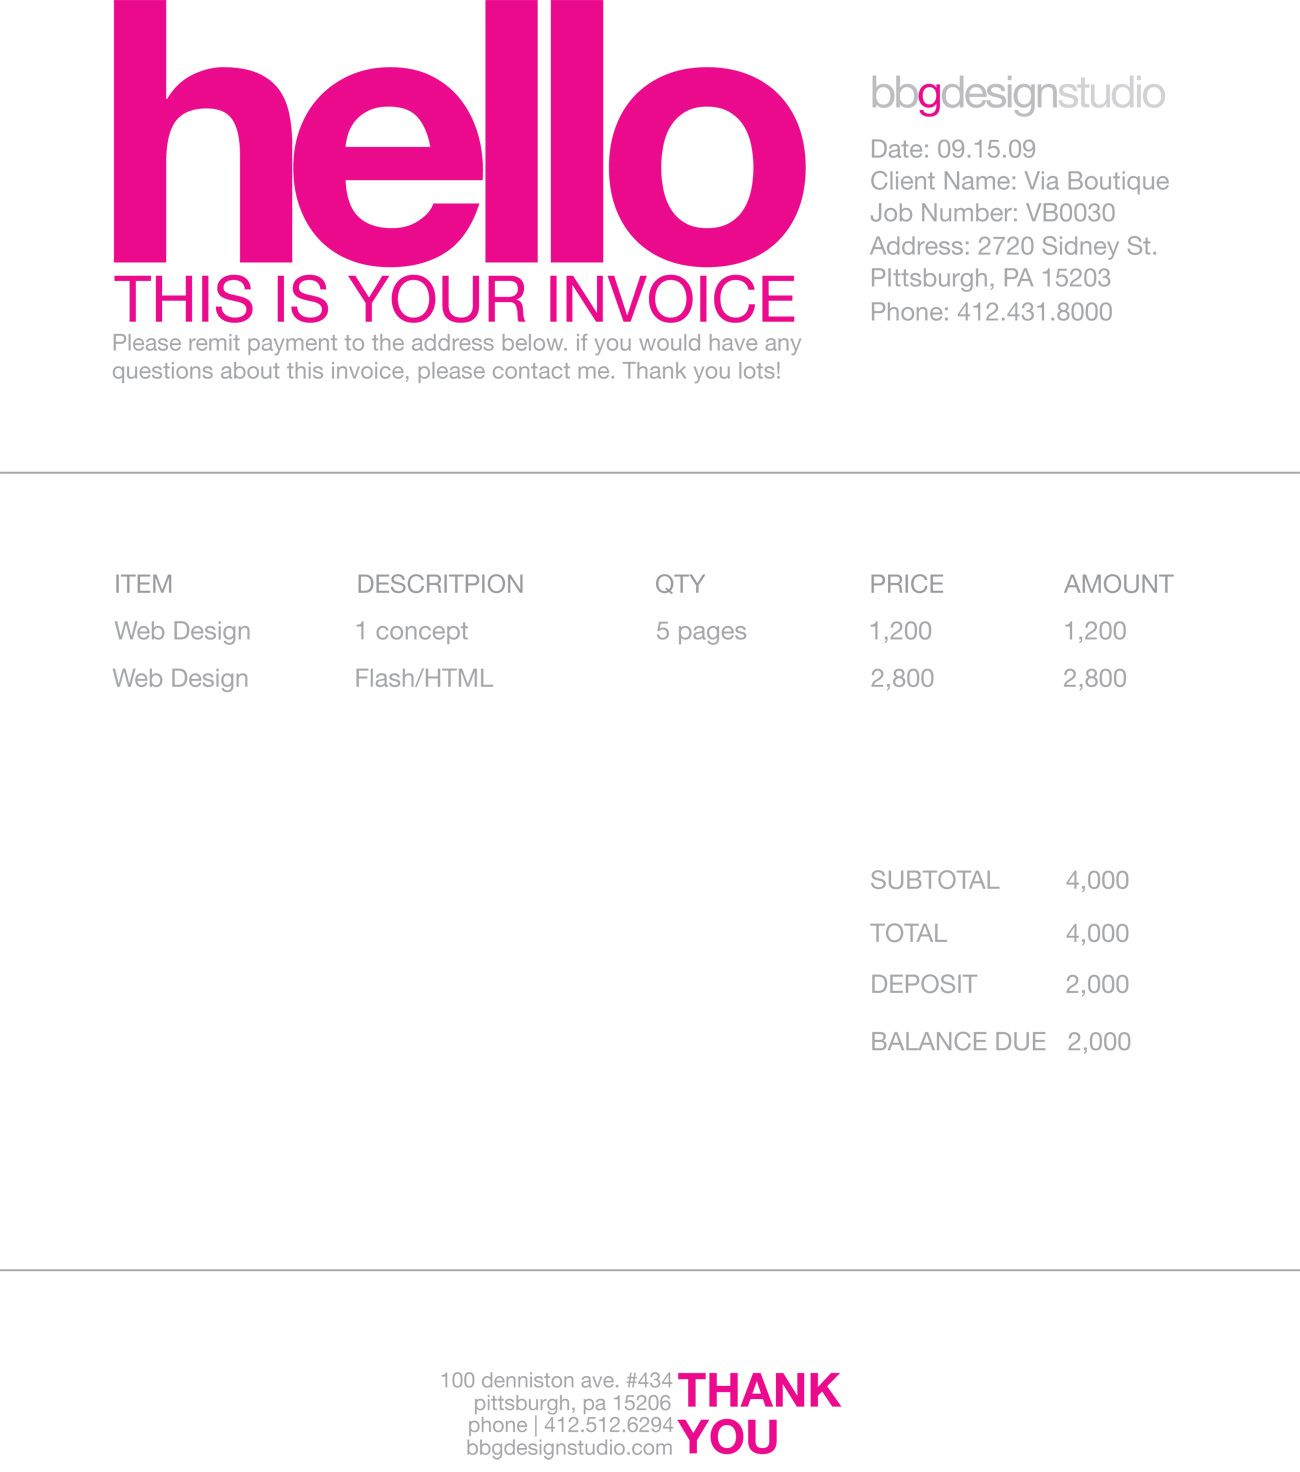 Weirdmailus  Inspiring  Images About Invoice Design On Pinterest With Fair Invoice For Photography Besides Invoice Pdf Free Furthermore Auto Repair Invoice Sample With Agreeable Free Catering Invoice Template Also Microsoft Invoicing In Addition Free Invoice And Estimate Software And Honda Civic Invoice As Well As Create An Invoice For Free Additionally Freelance Designer Invoice Template From Pinterestcom With Weirdmailus  Fair  Images About Invoice Design On Pinterest With Agreeable Invoice For Photography Besides Invoice Pdf Free Furthermore Auto Repair Invoice Sample And Inspiring Free Catering Invoice Template Also Microsoft Invoicing In Addition Free Invoice And Estimate Software From Pinterestcom